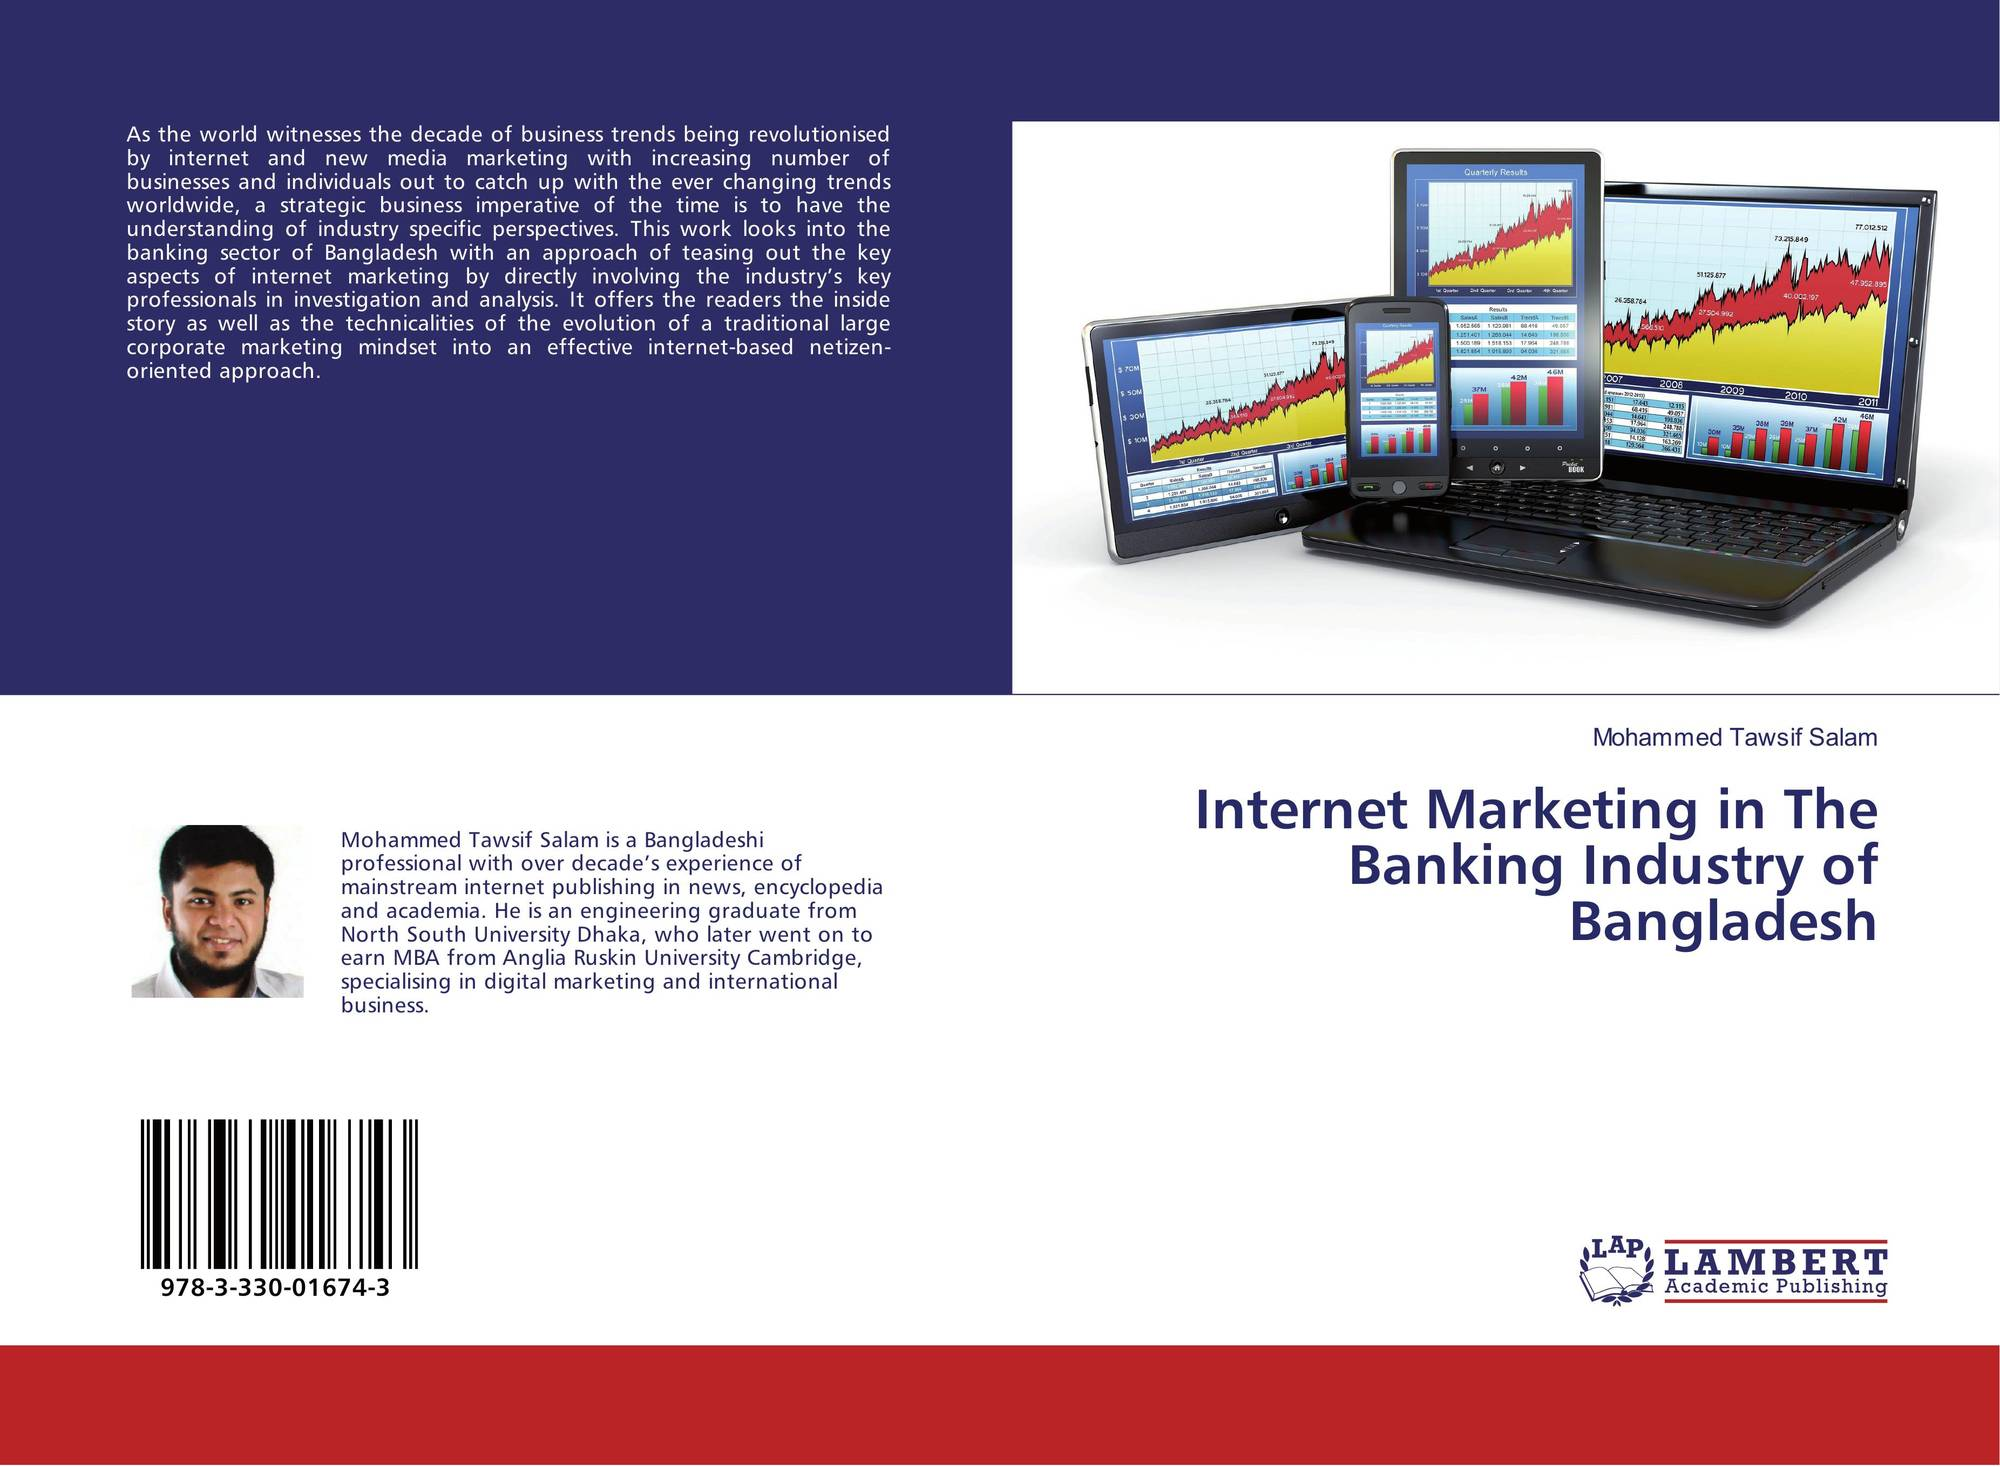 banking industry in bangladesh essay